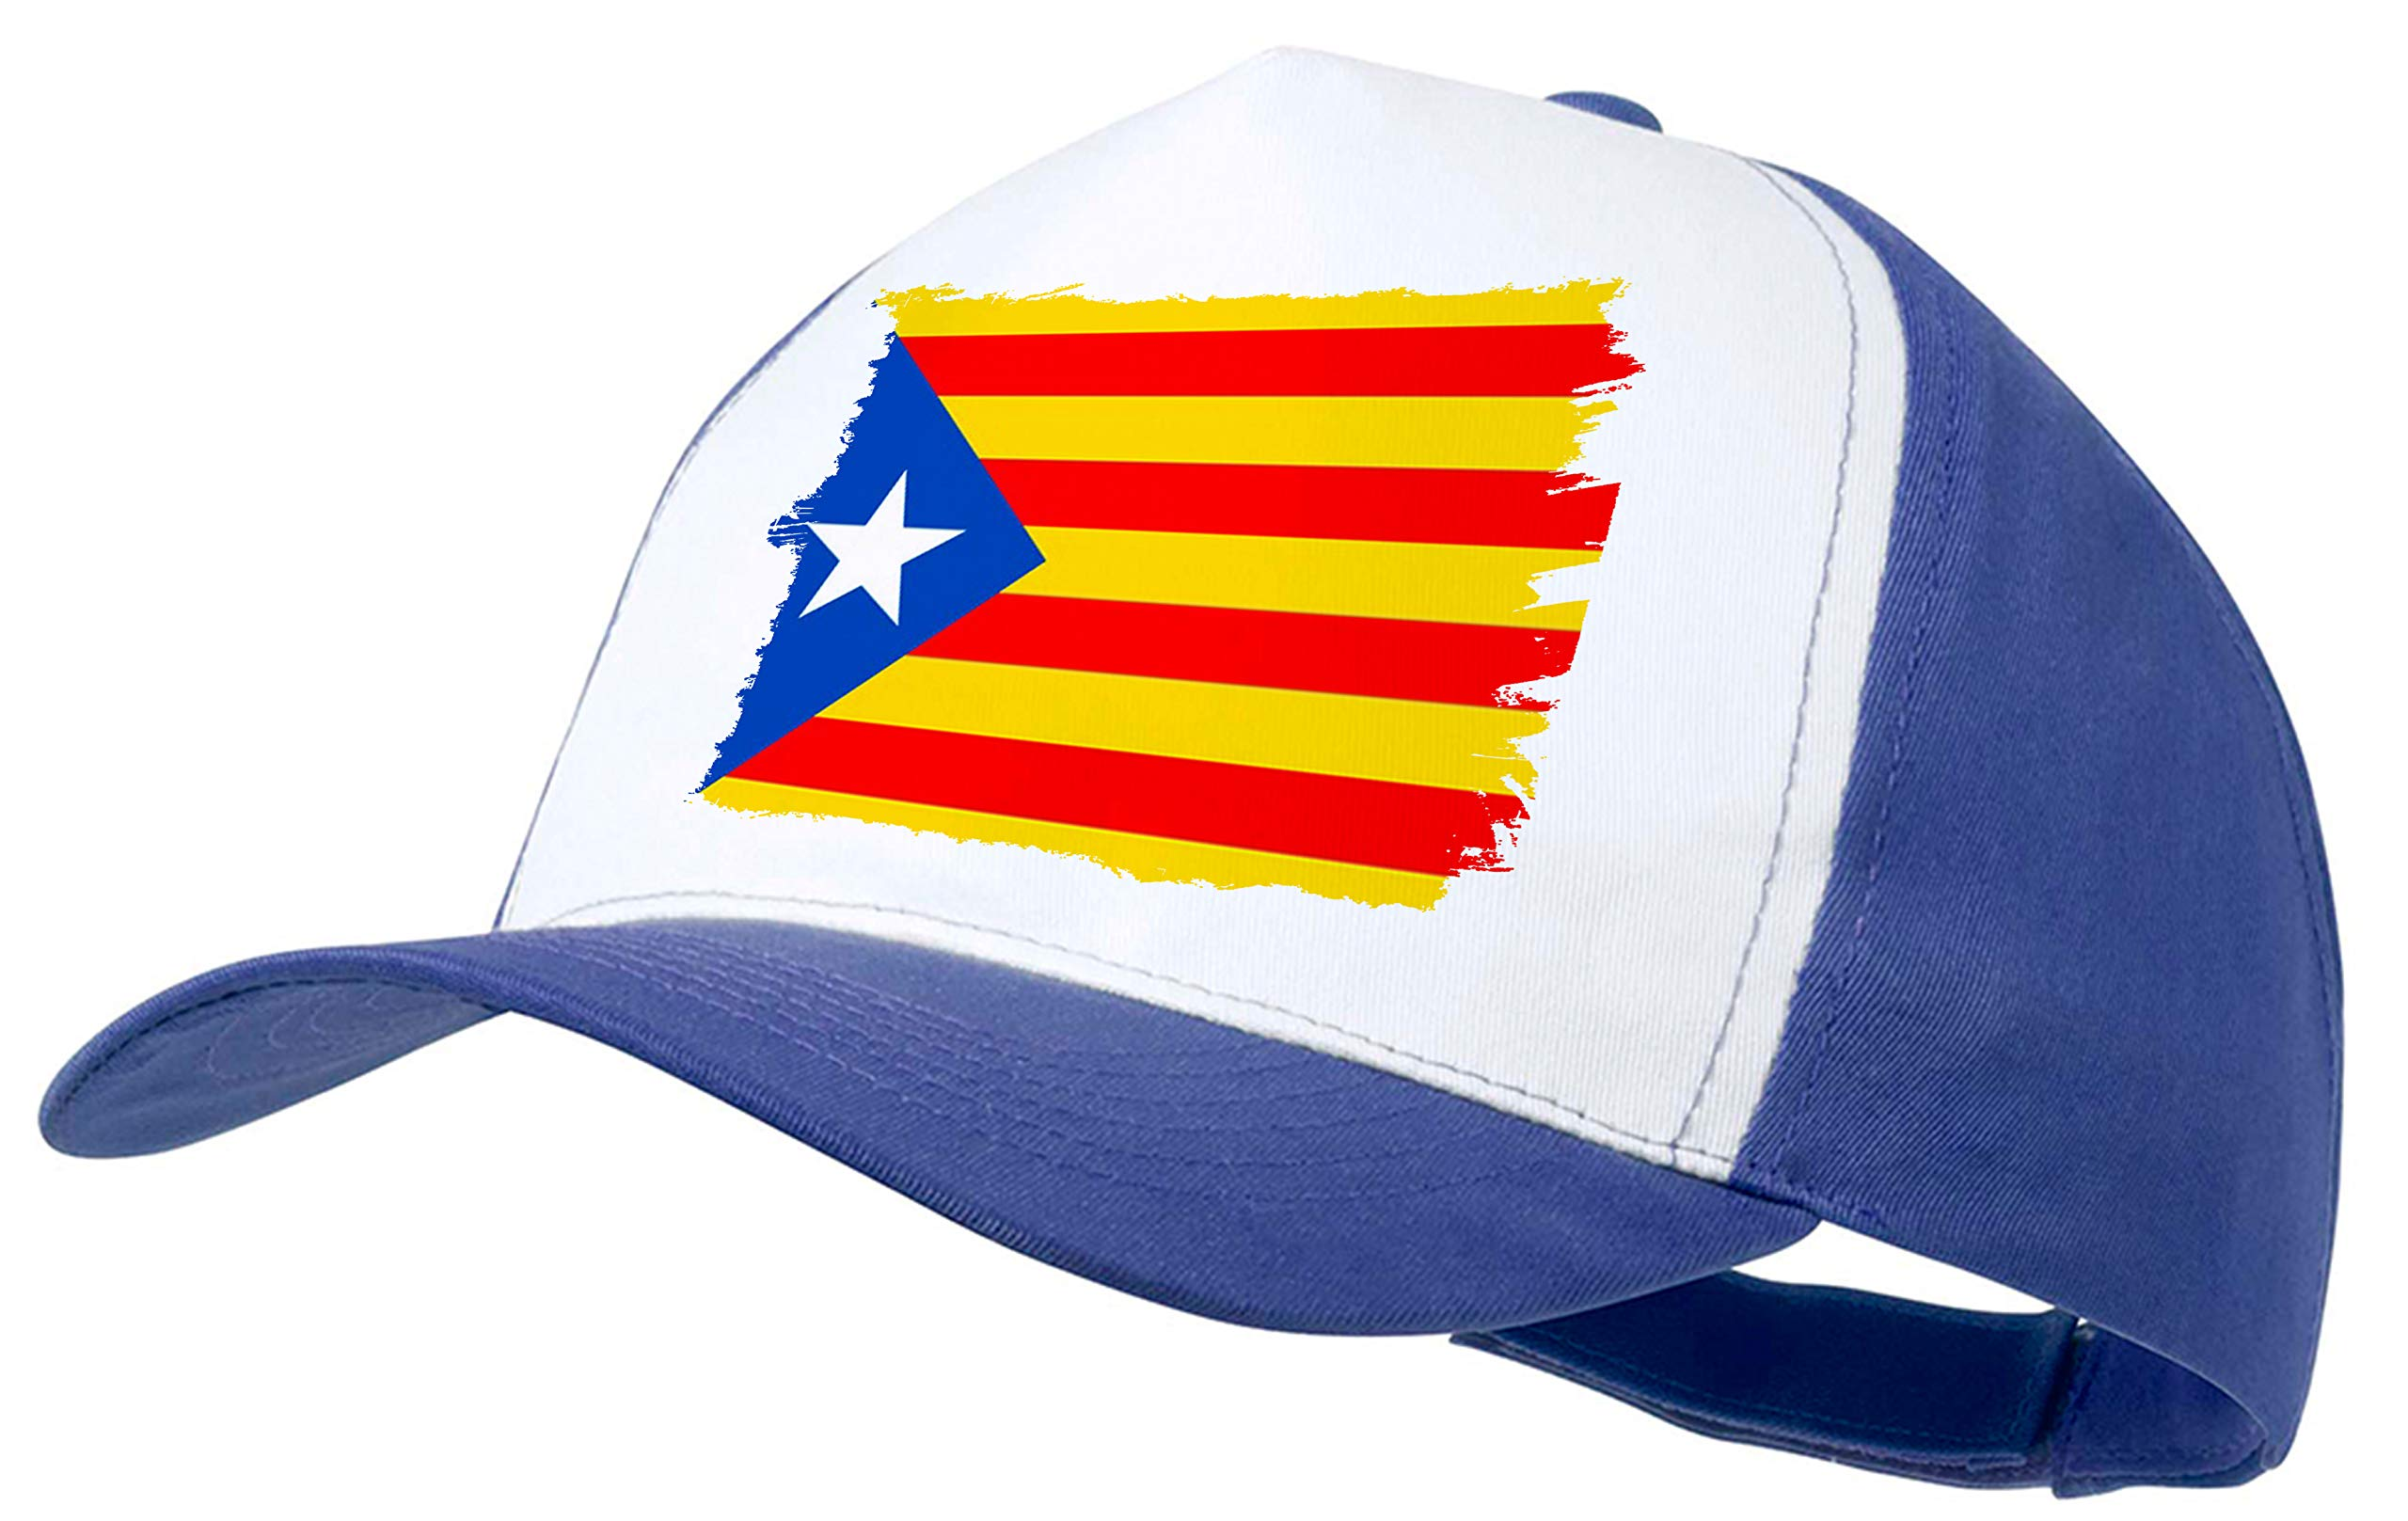 MERCHANDMANIA Gorra Azul Bandera CATALUÑA Independencia Color Cap: Amazon.es: Deportes y aire libre